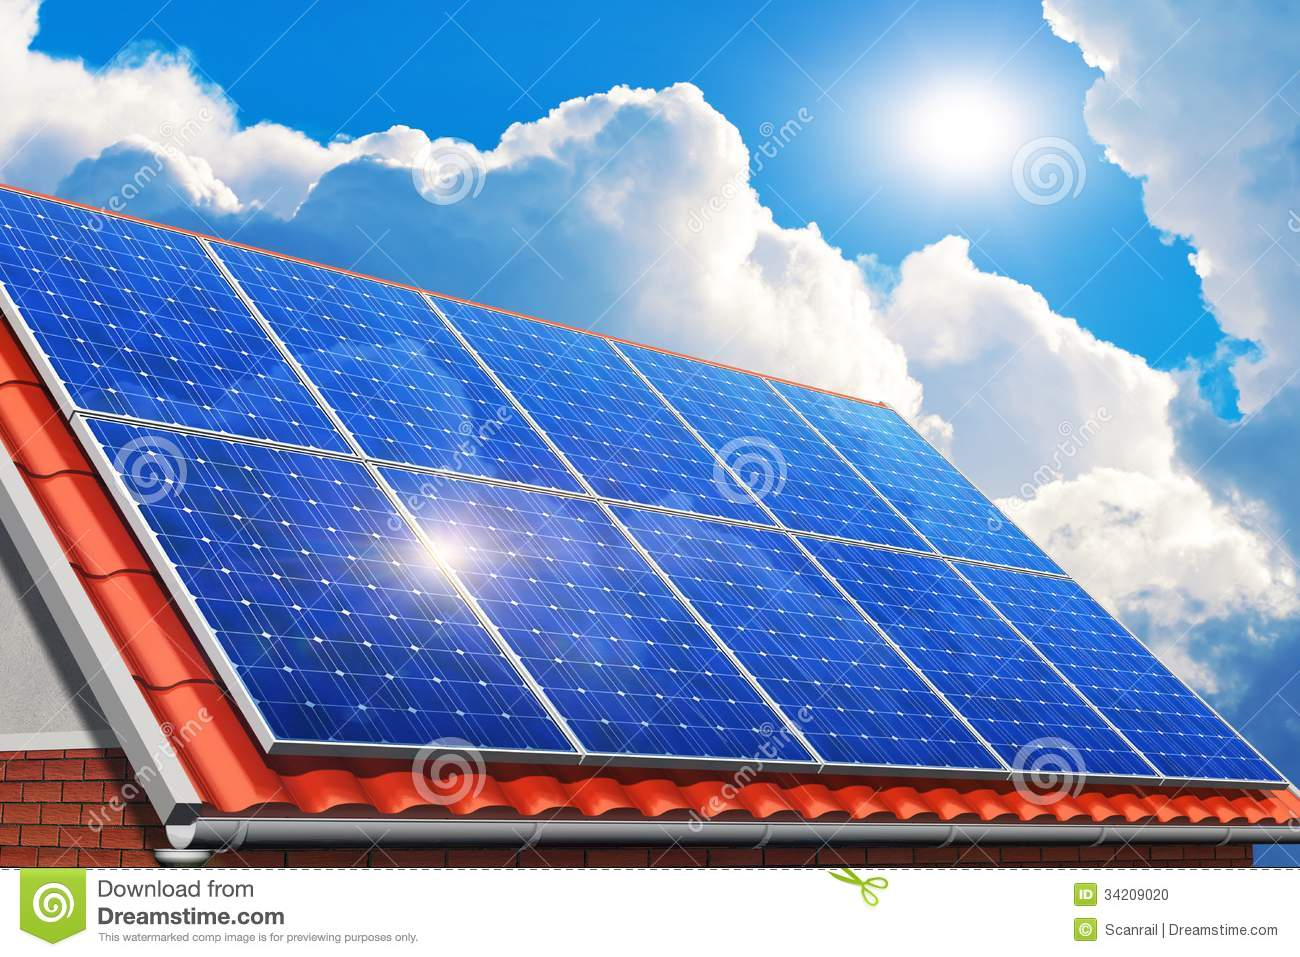 Solar Panels On House Roof Stock Photo Image 34209020